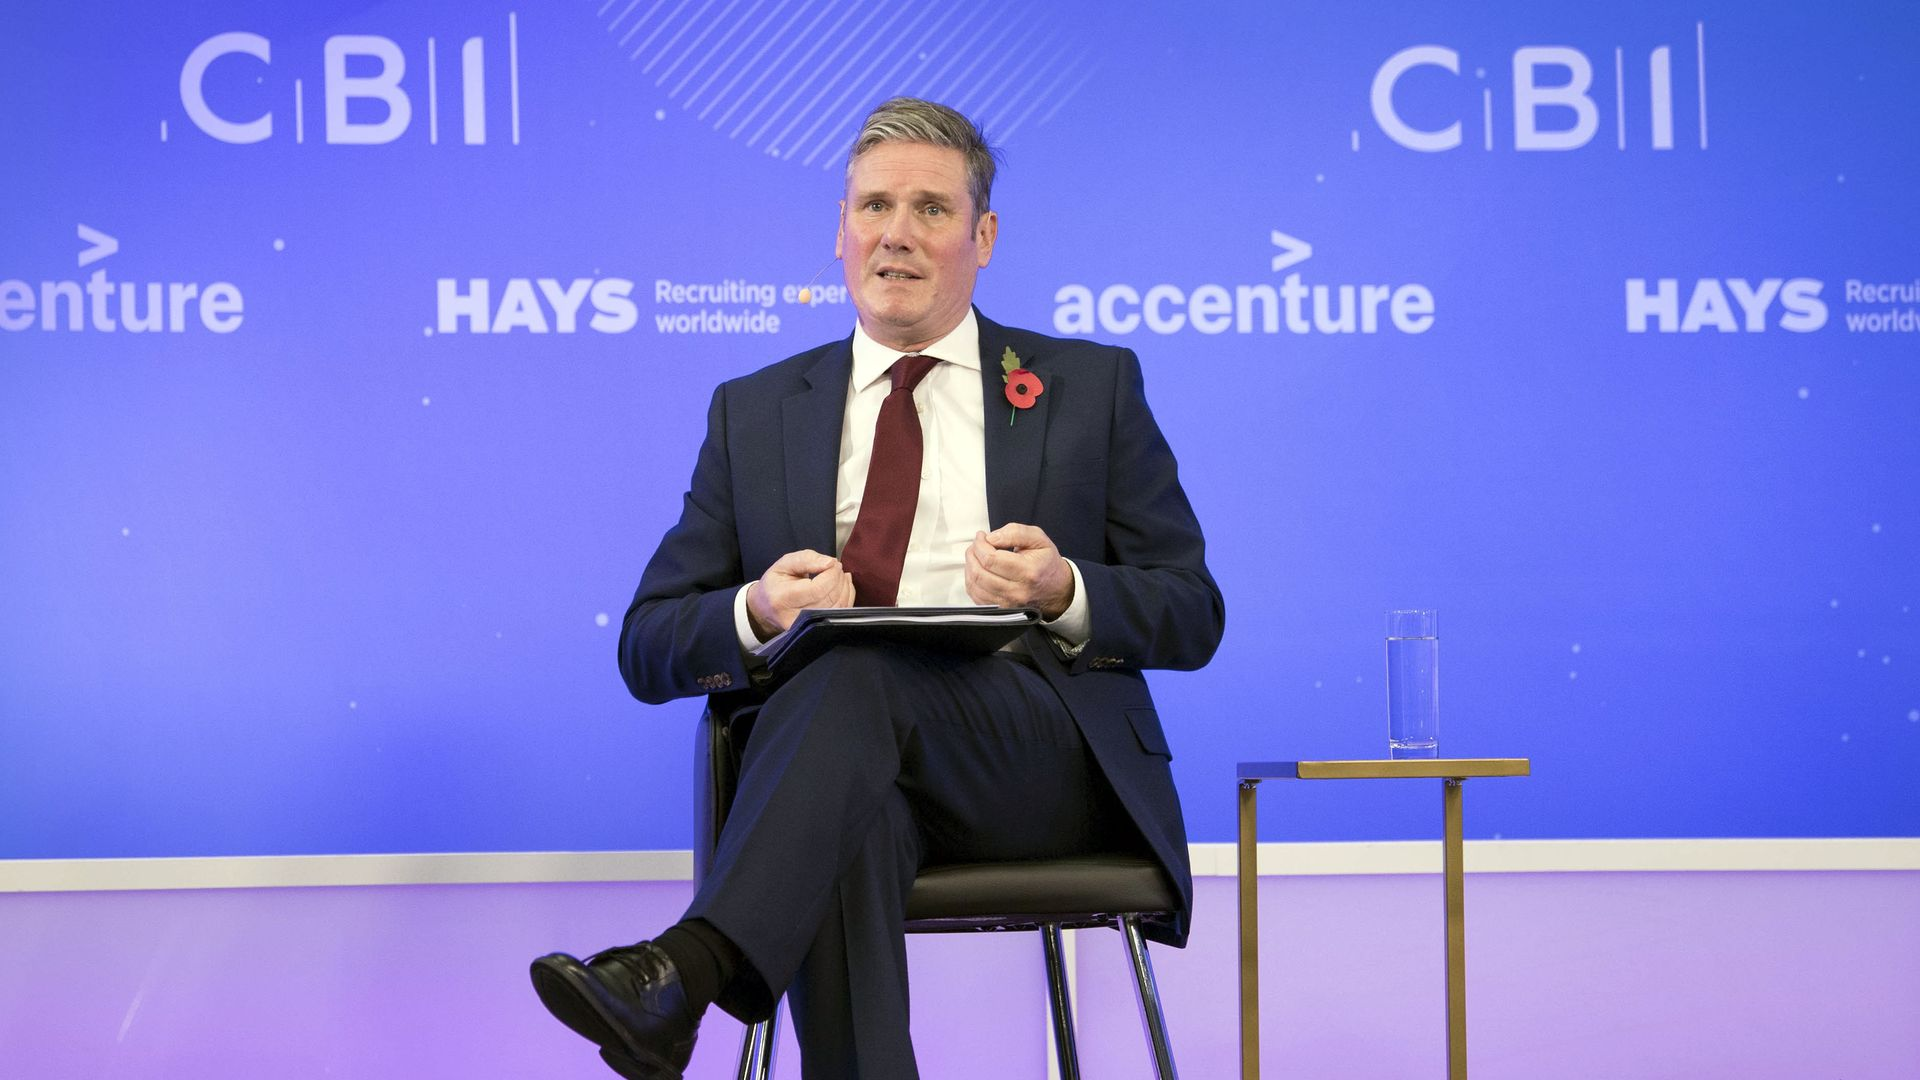 Labour Party leader Sir Keir Starmer speaking during the CBI annual conference at ITN Headquarters in central London. - Credit: PA